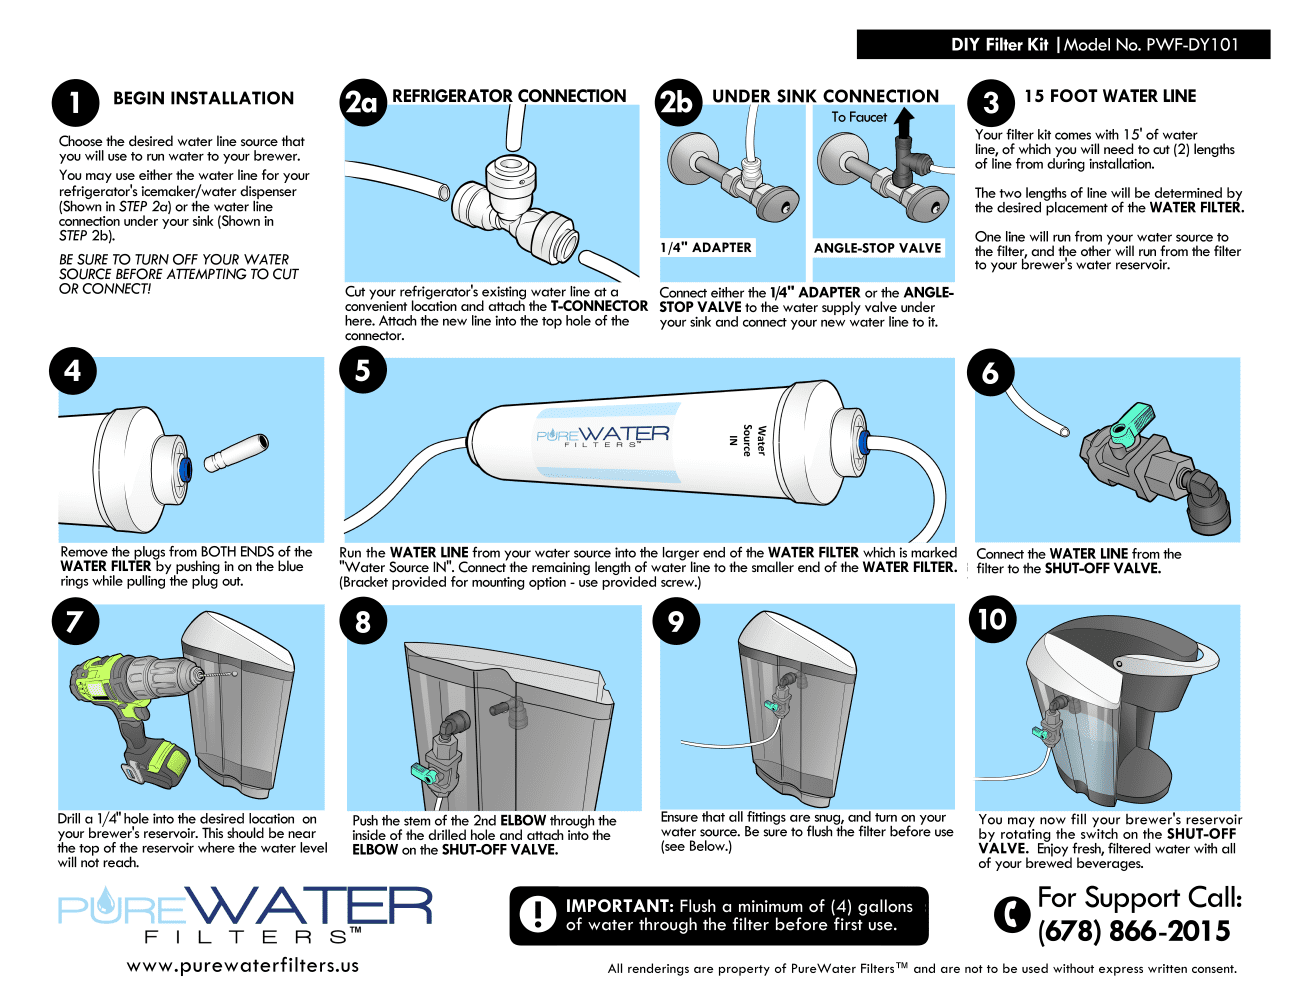 Filtered water refill do it yourself kit for non commercial keurig keurig do it yourself filter kit instructions by purewater filters solutioingenieria Gallery